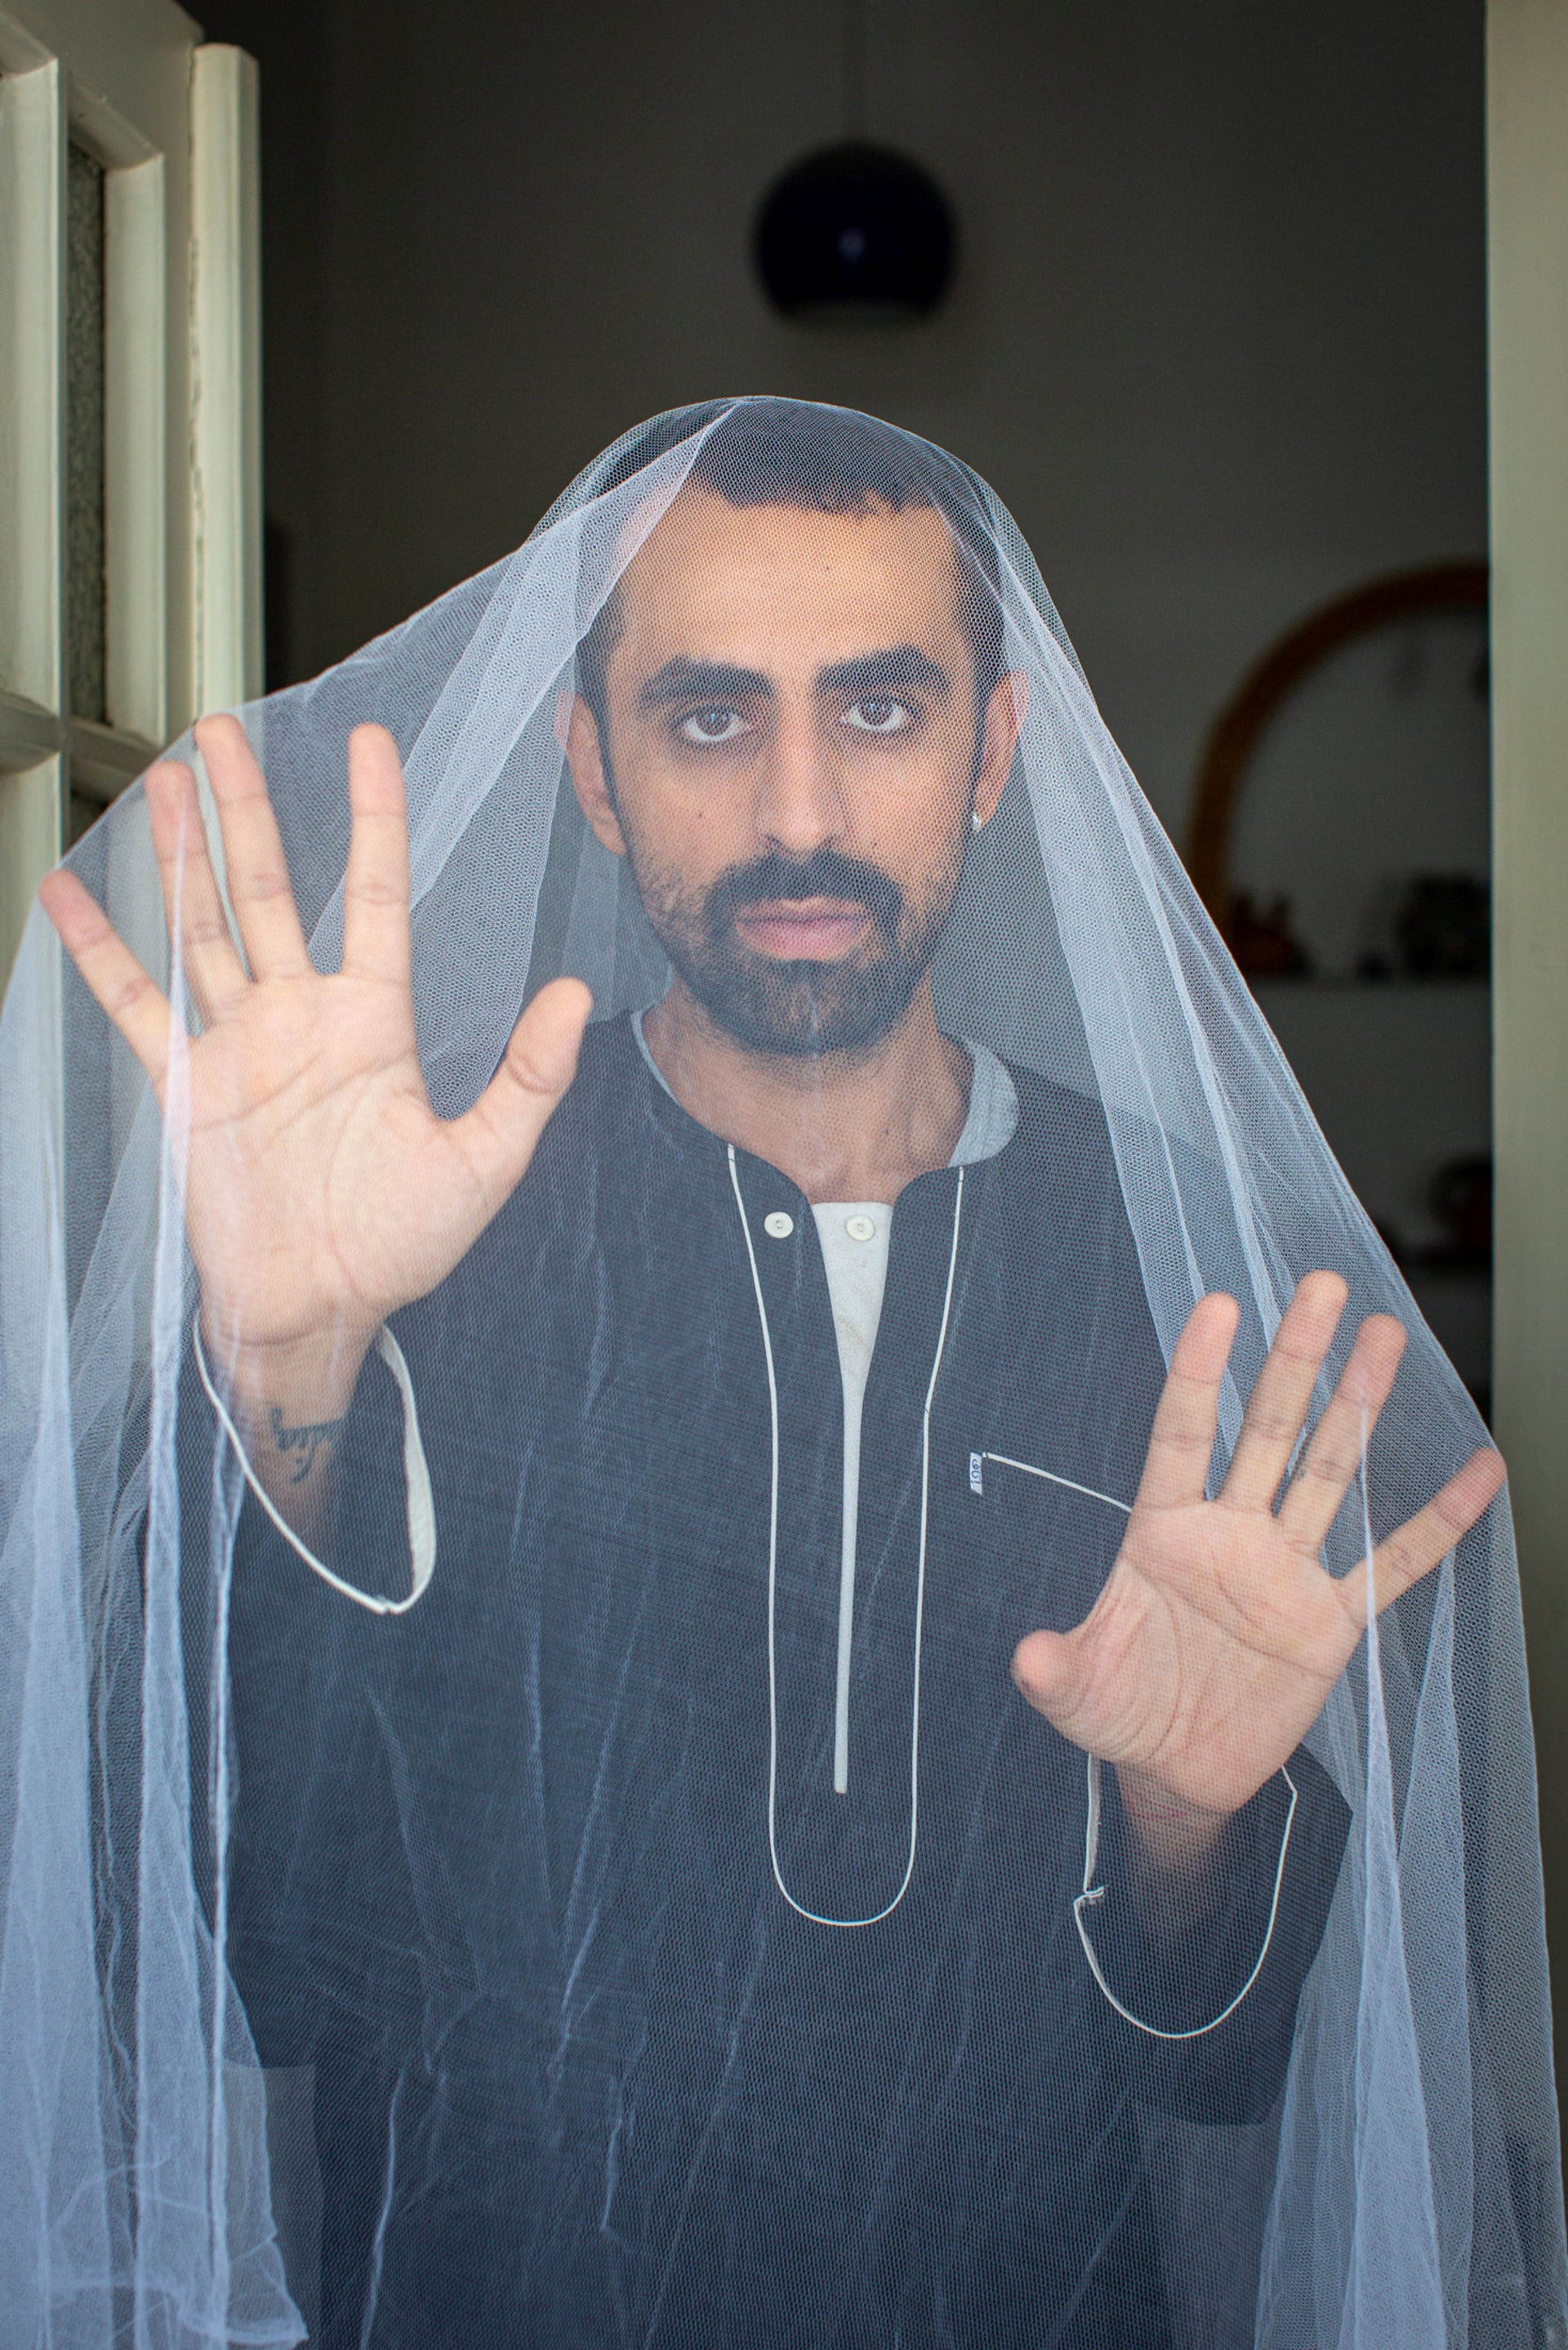 Murad. 'At a concert in Ramallah, I performed wearing a wedding veil and I saw people were shocked. A lot of people were cheering, but a lot of people were just staring'